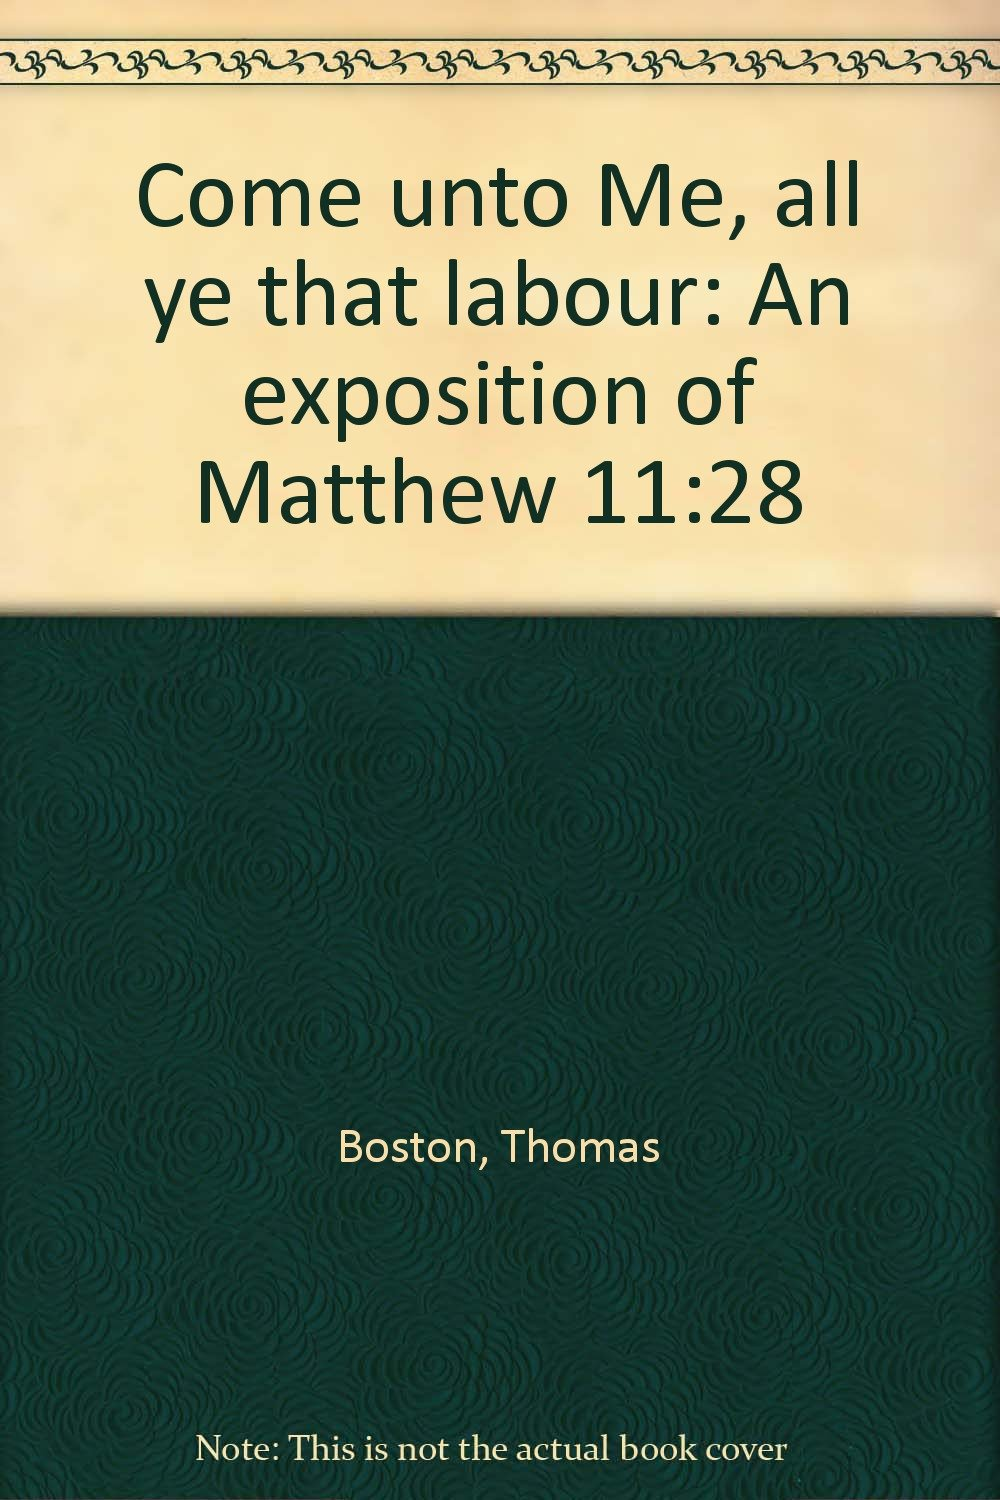 Download Come unto Me, all ye that labour: An exposition of Matthew 11:28 ebook